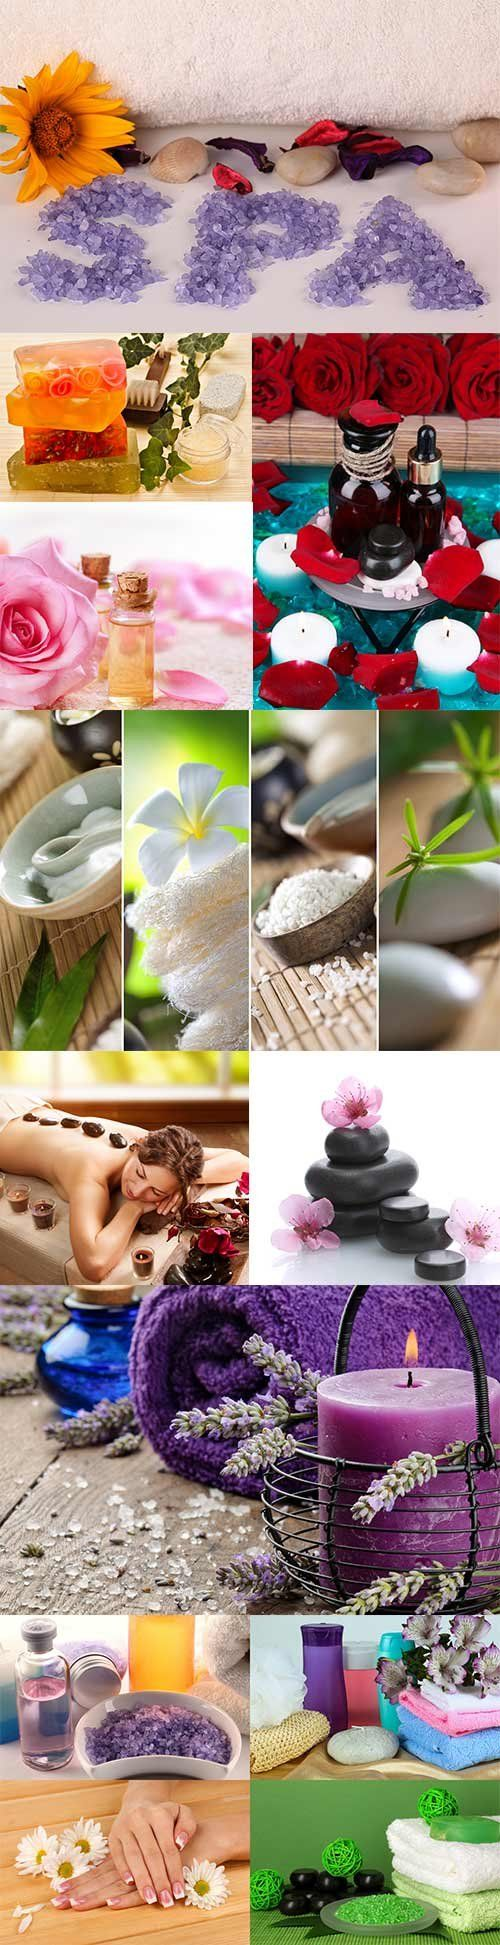 SPA collection - 3